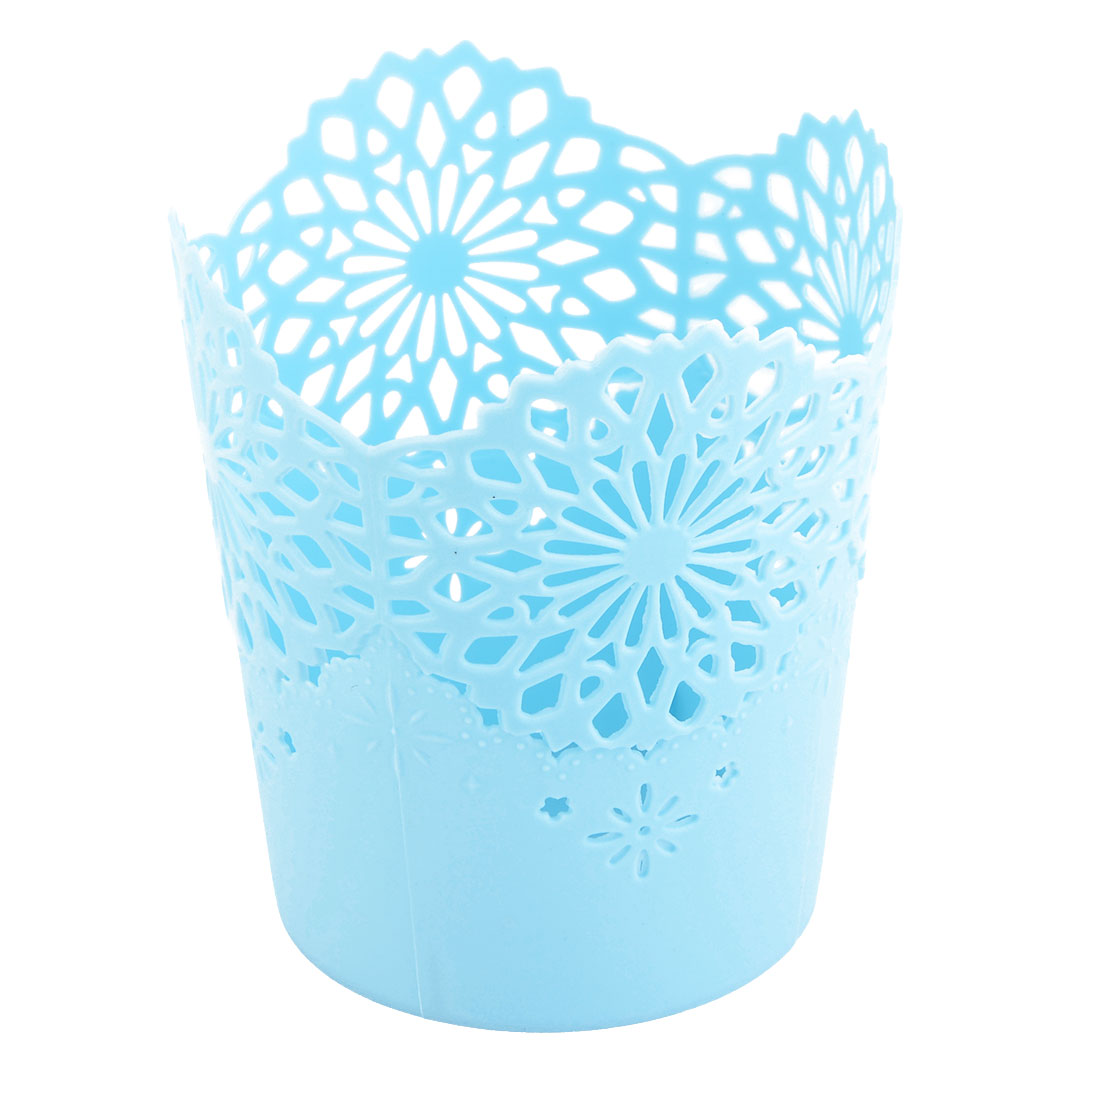 Home Office Plastic Hollow Out Design Stationery Storage Basket Holder Blue